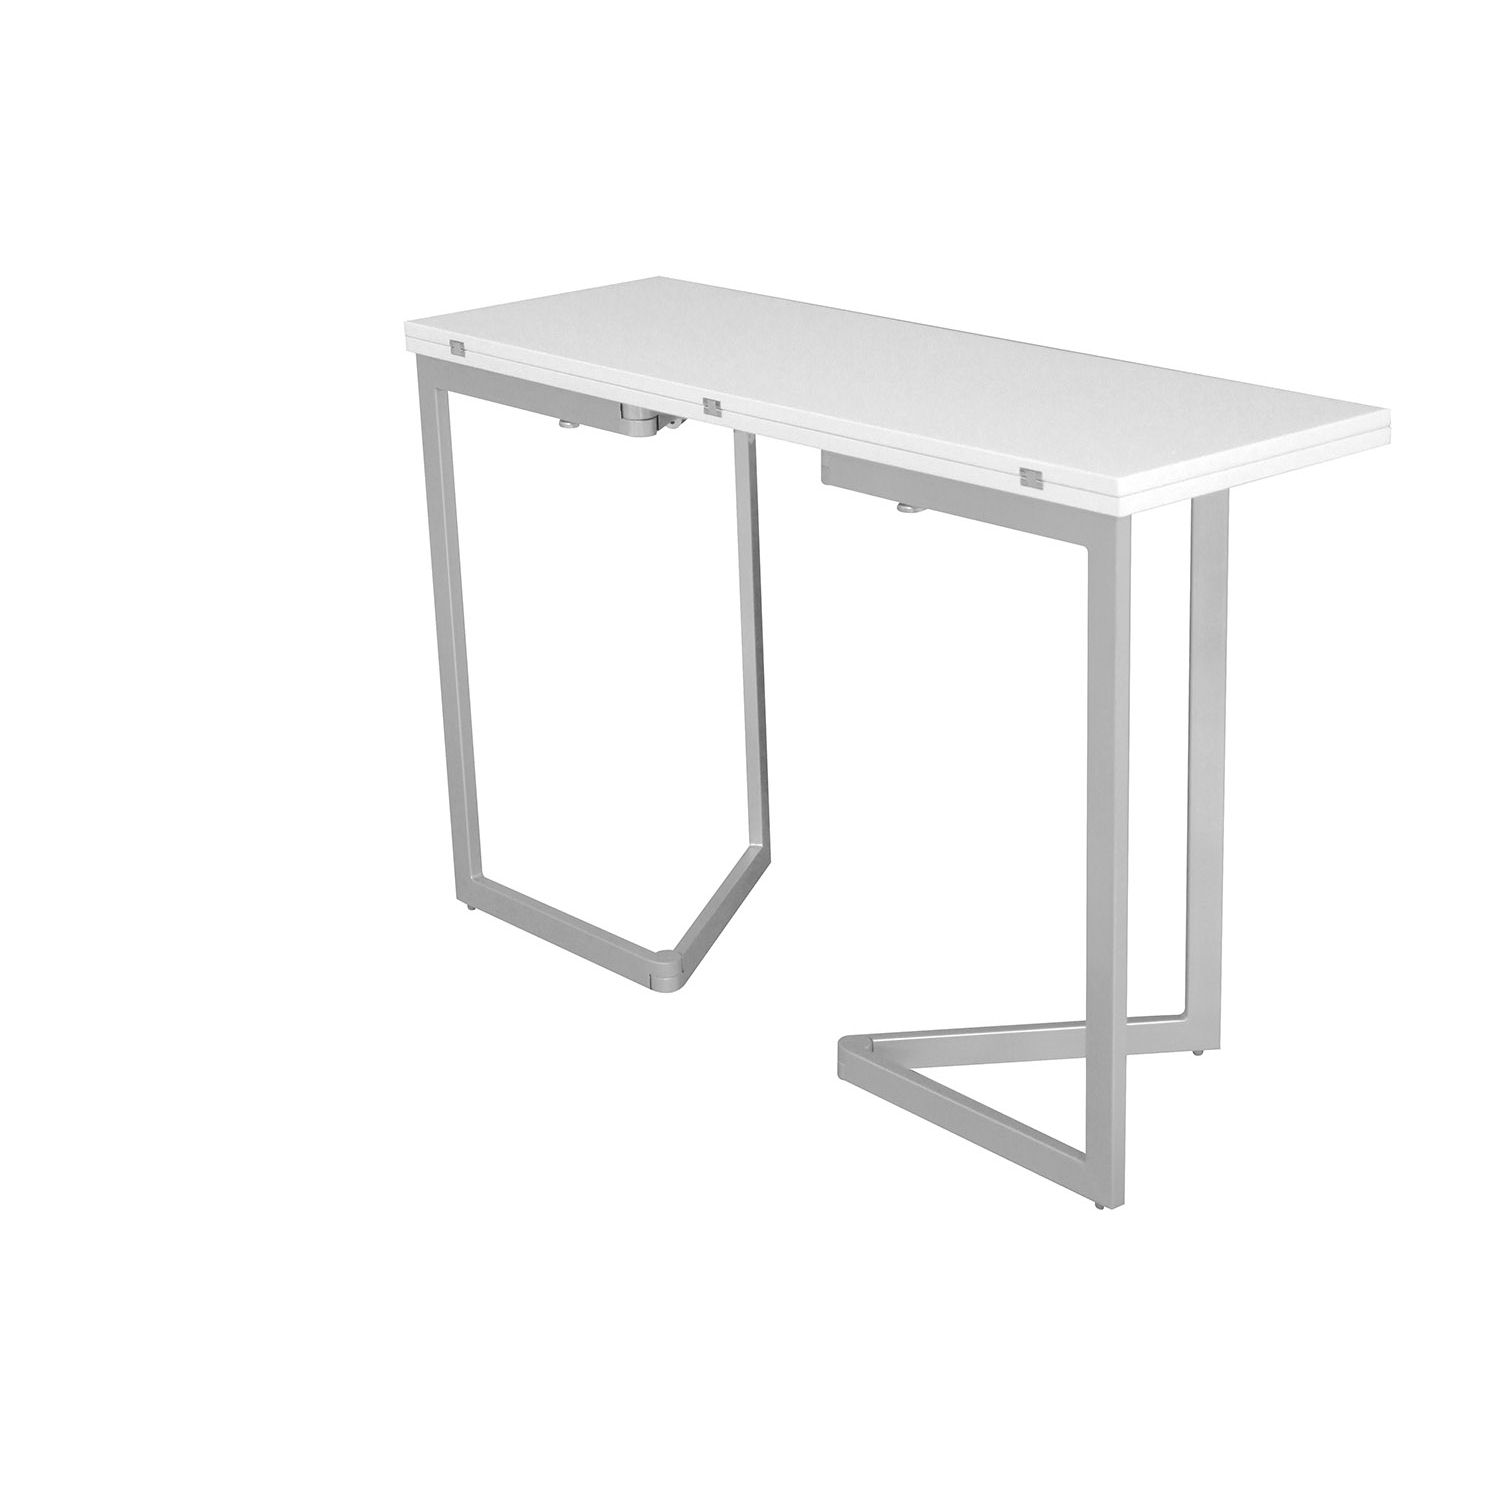 deco in paris table console extensible blanche laquee talia talia console blanc. Black Bedroom Furniture Sets. Home Design Ideas